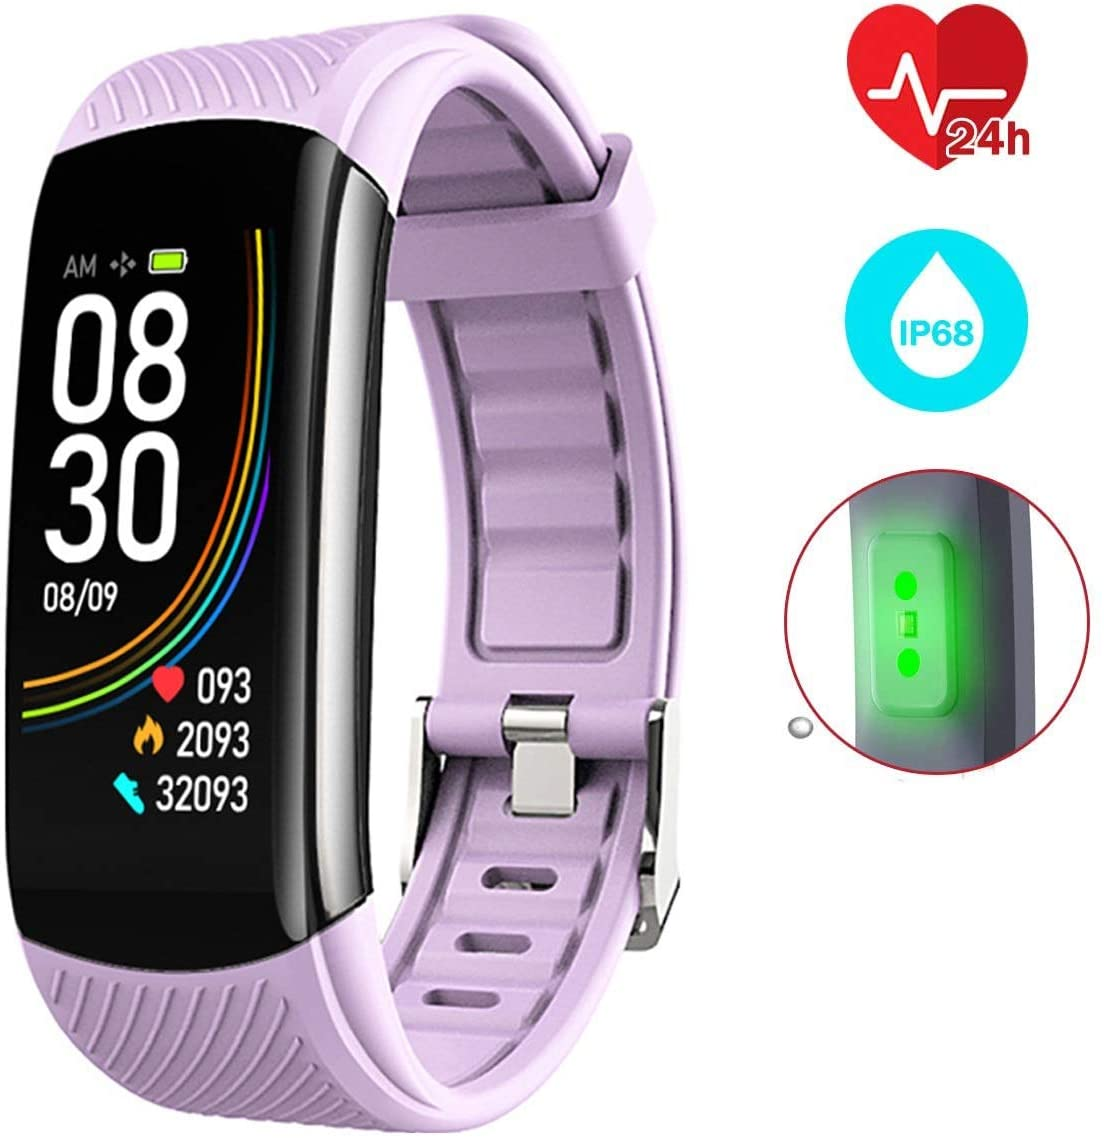 GUANLIAN Fitness Tracker, Activity Tracker with Heart Rate Monitor IP68 Waterproof Fitness Watch with Color Screen Sleep Monitor, Calorie Counter Smart Pedometer (Color : Purple)